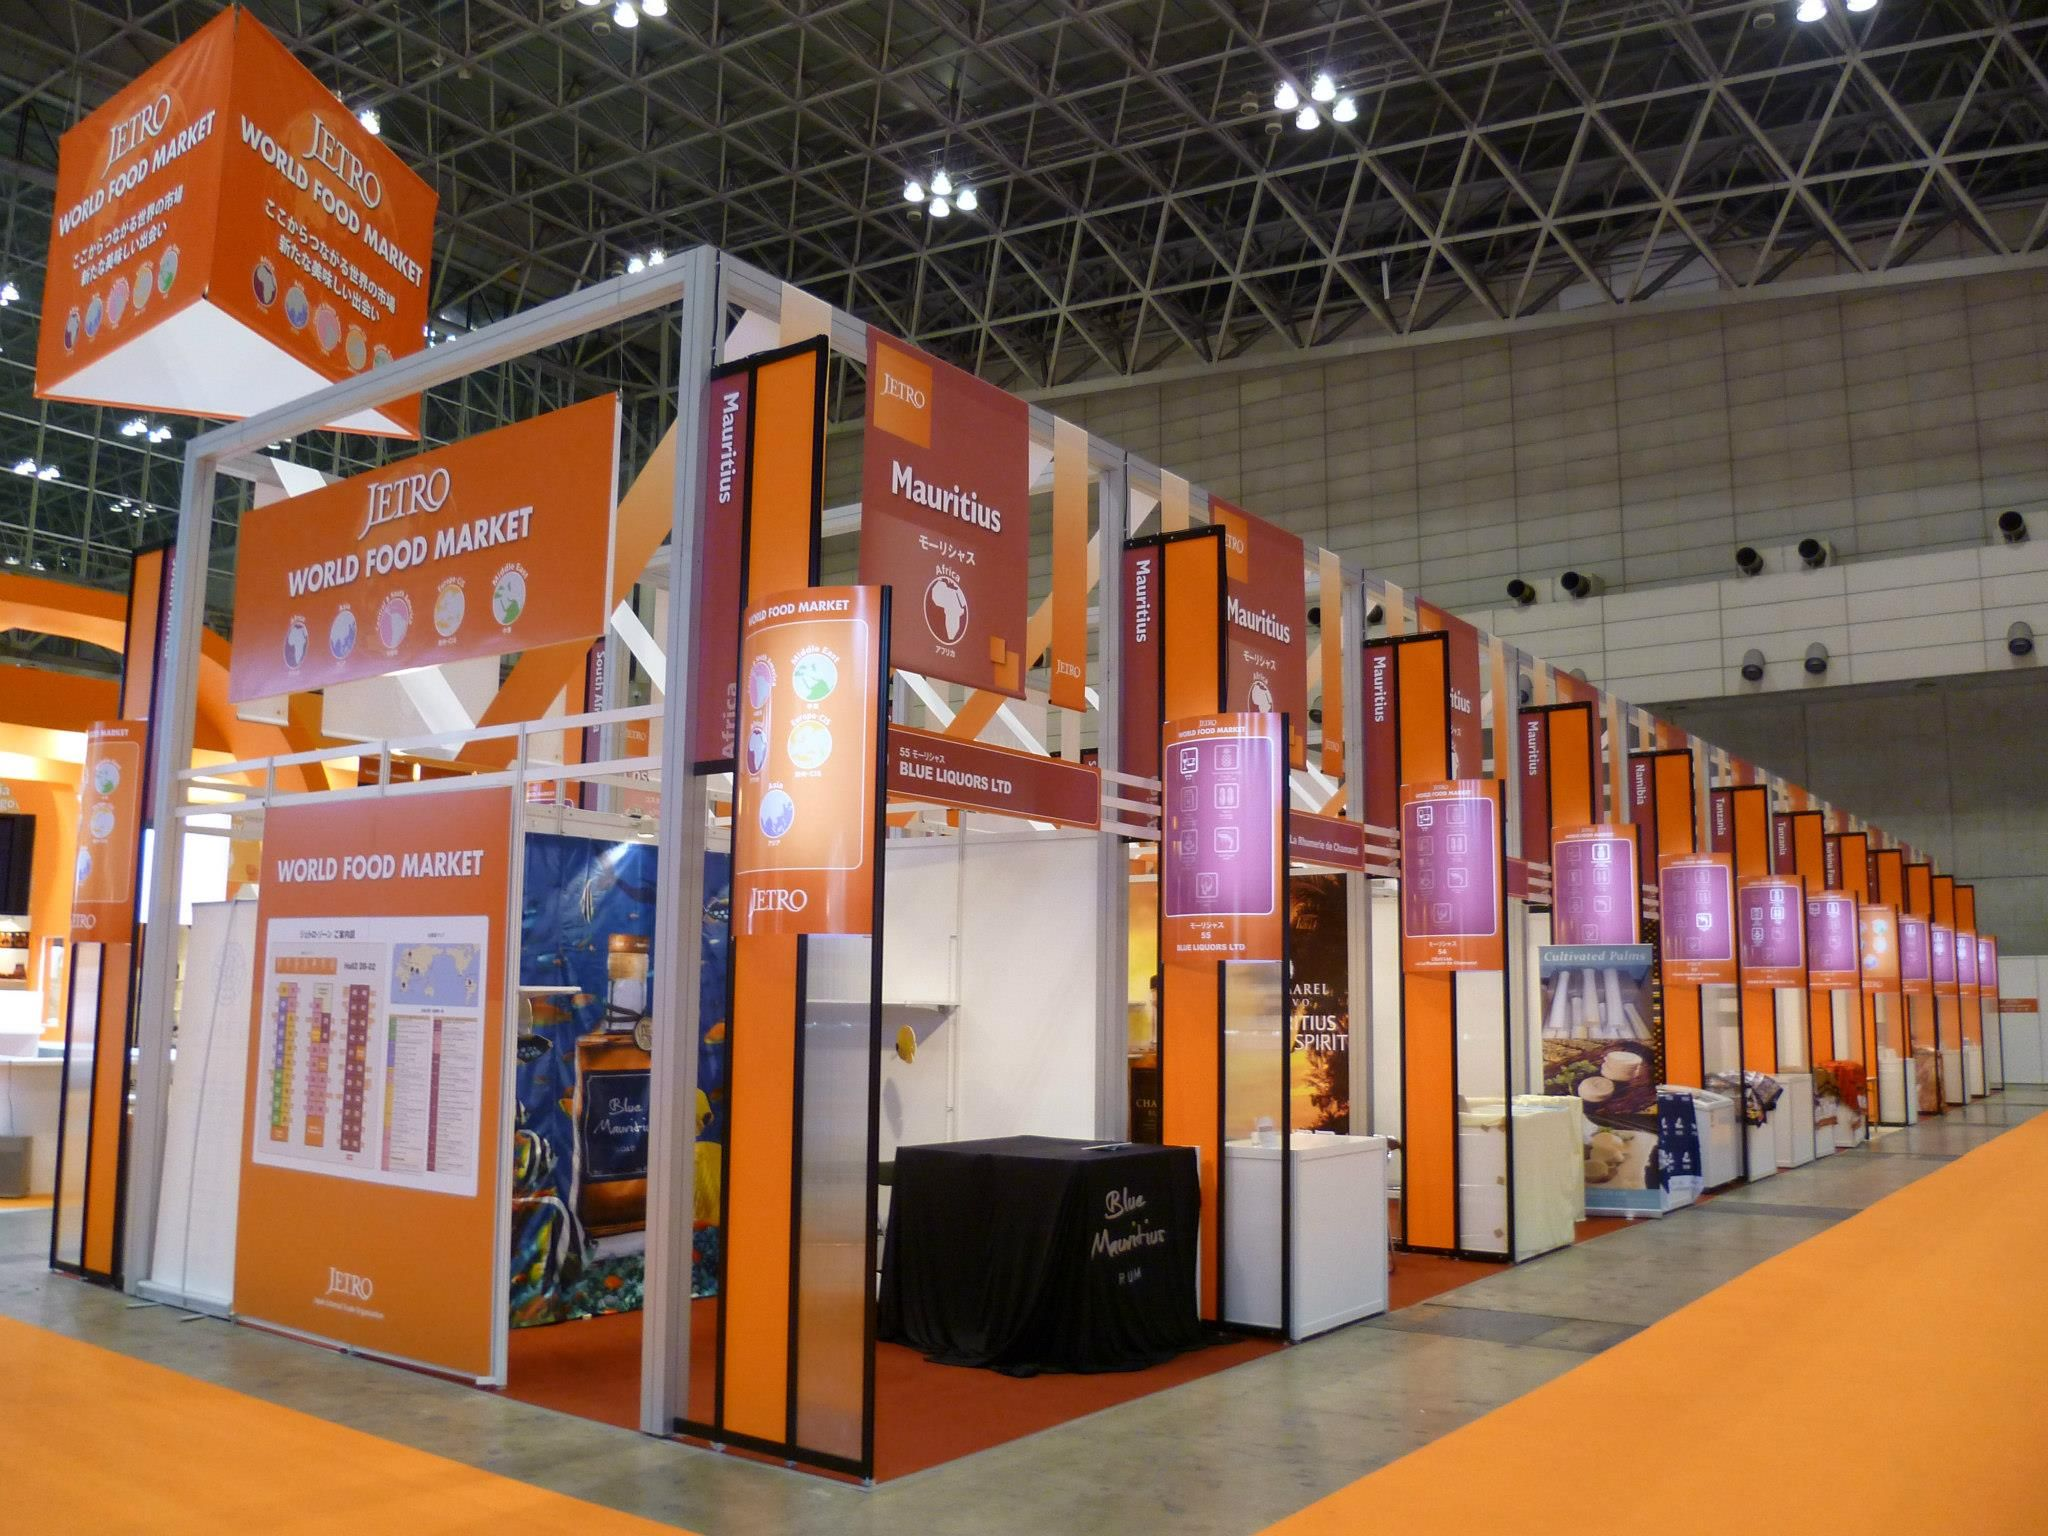 Expo Exhibition Stands Election : Expo international ltd